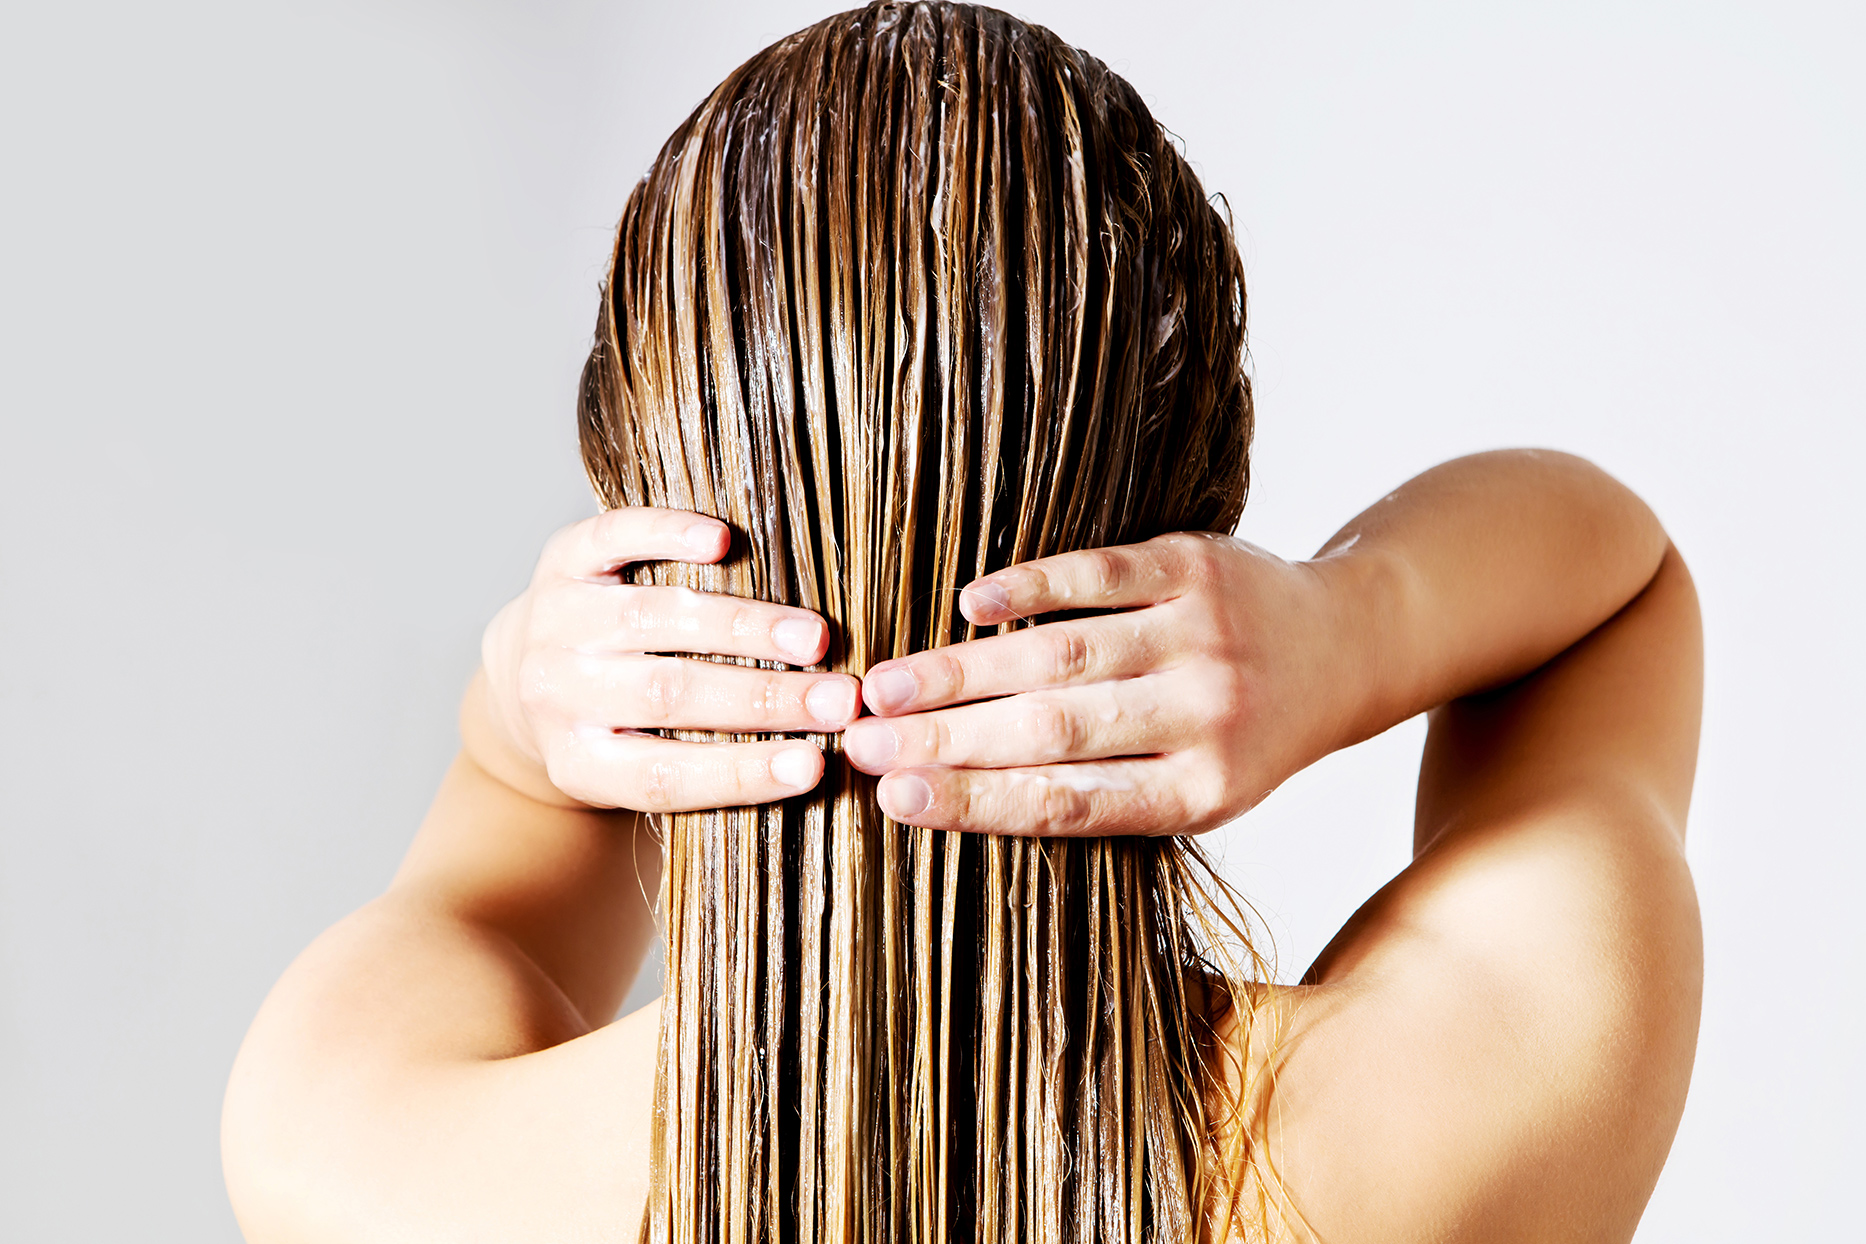 persons hands on long dirty blonde hair with conditioner